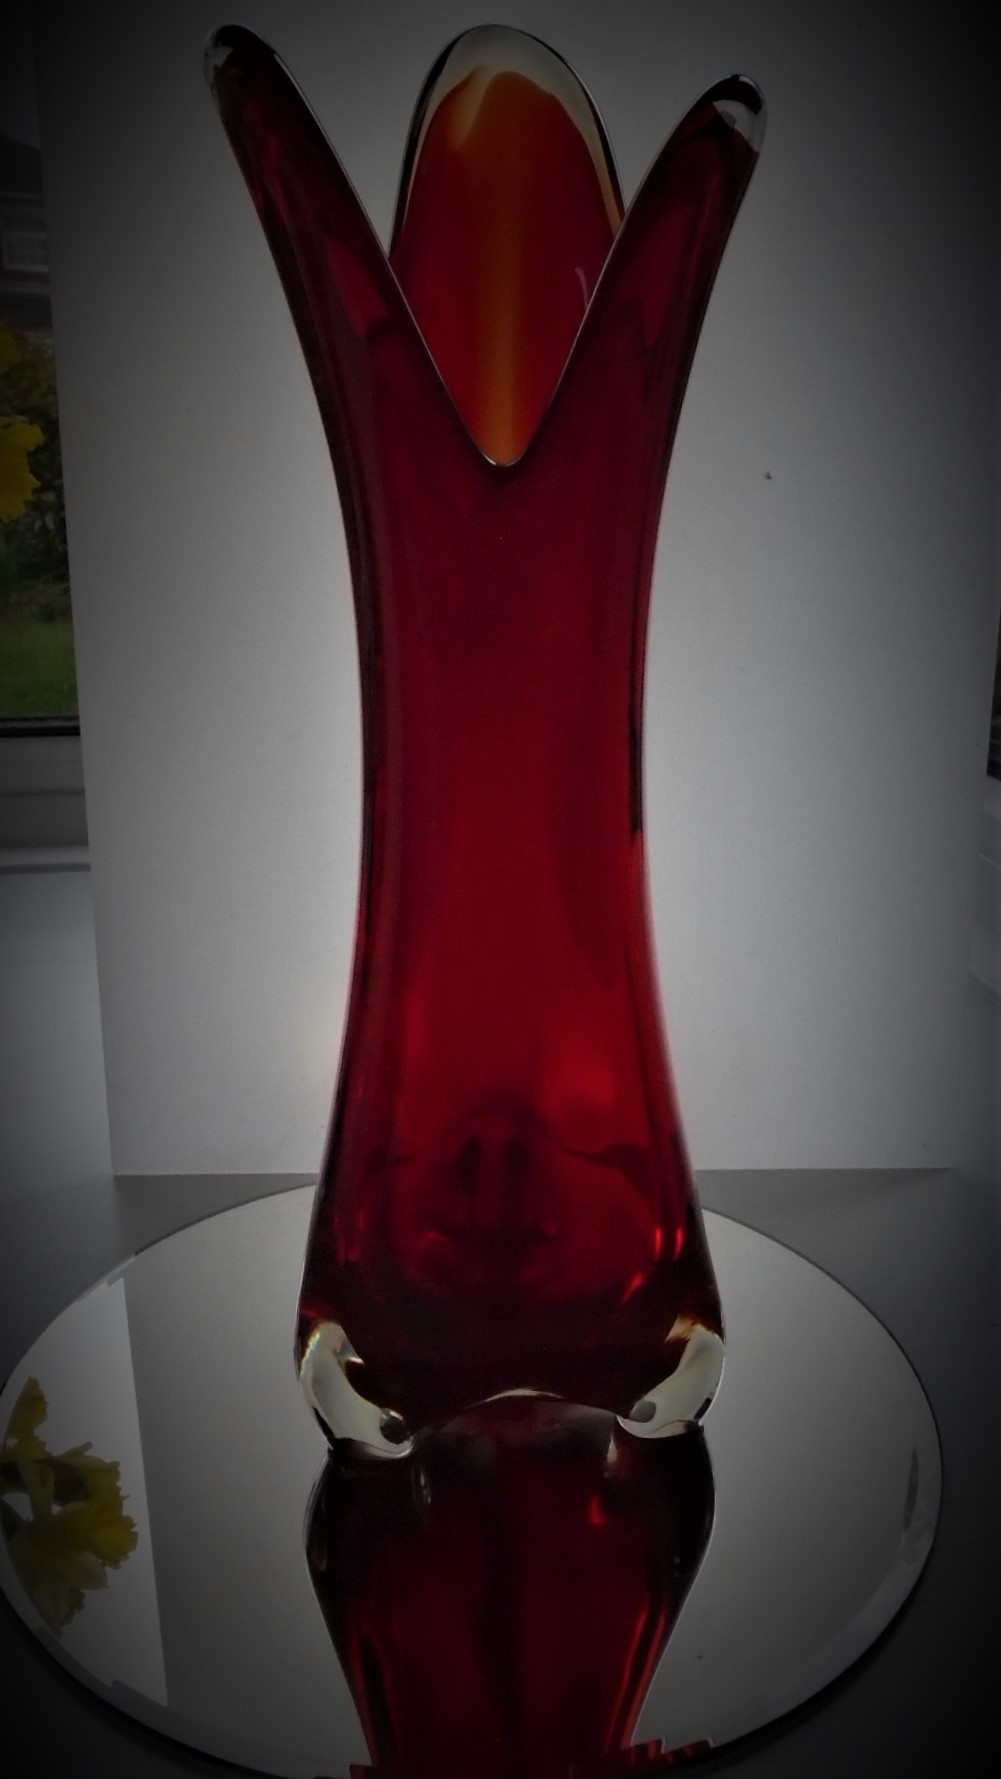 A Fine example of a large and heavy Vintage Murano Clear Cased Red/Orange Pulled Finger Rim Art Glass vase.